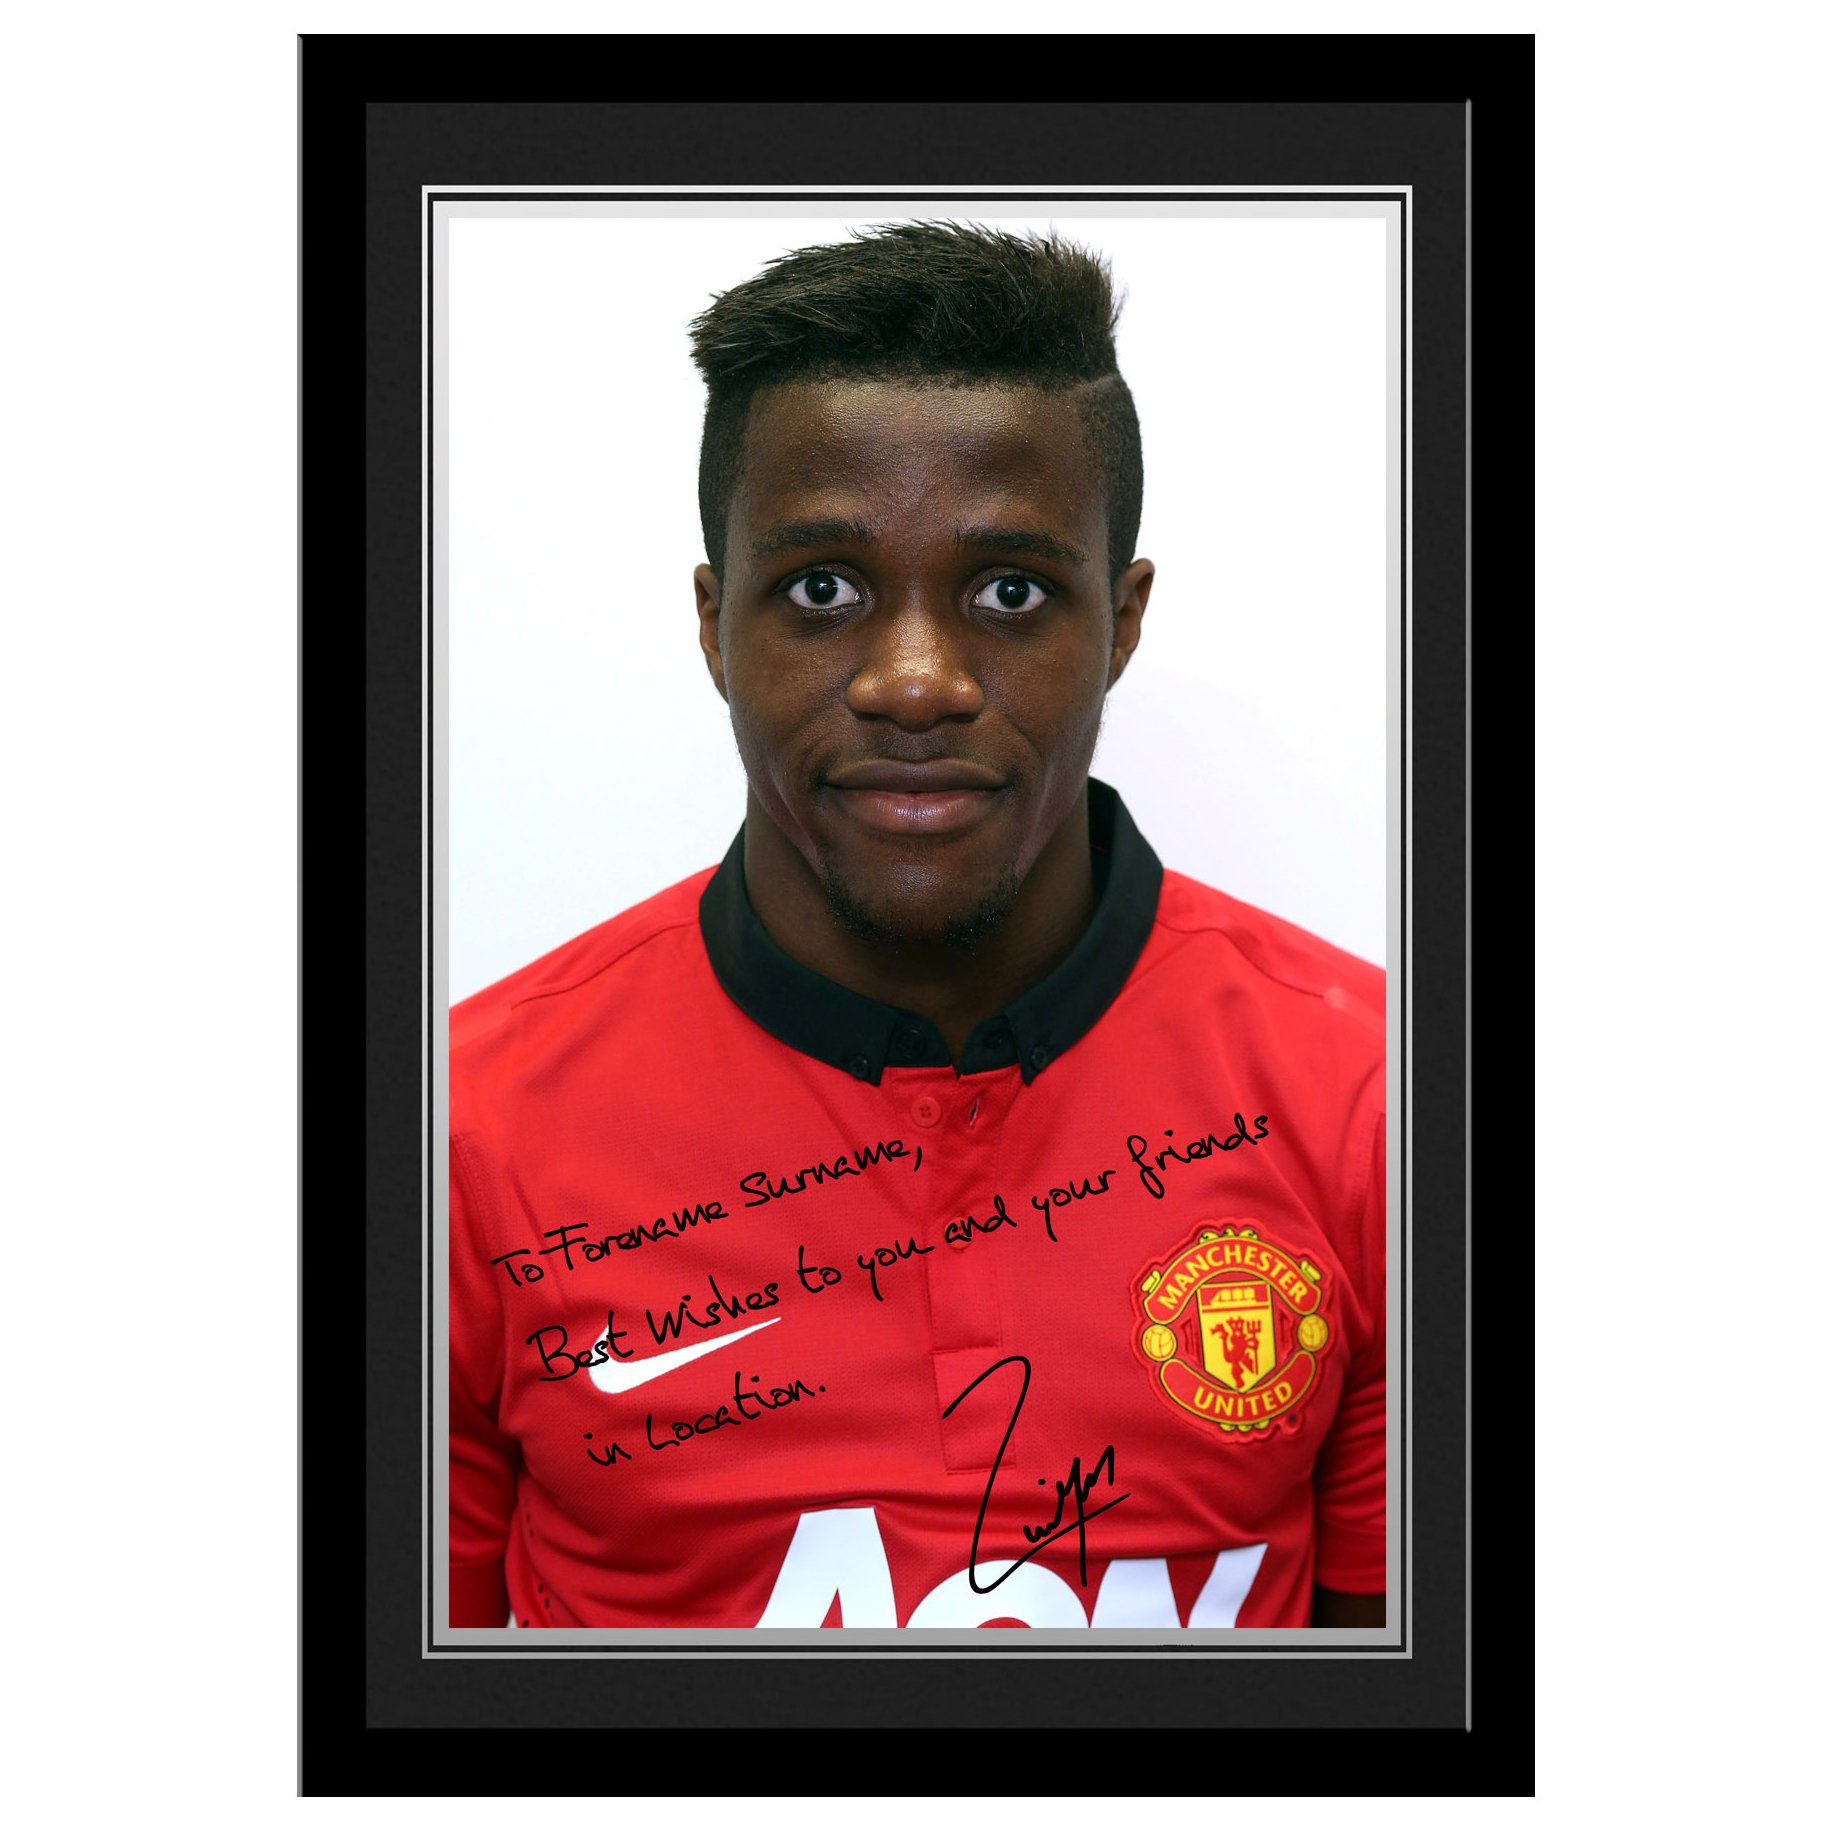 Manchester United Personalised Signature Photo Framed - Zaha